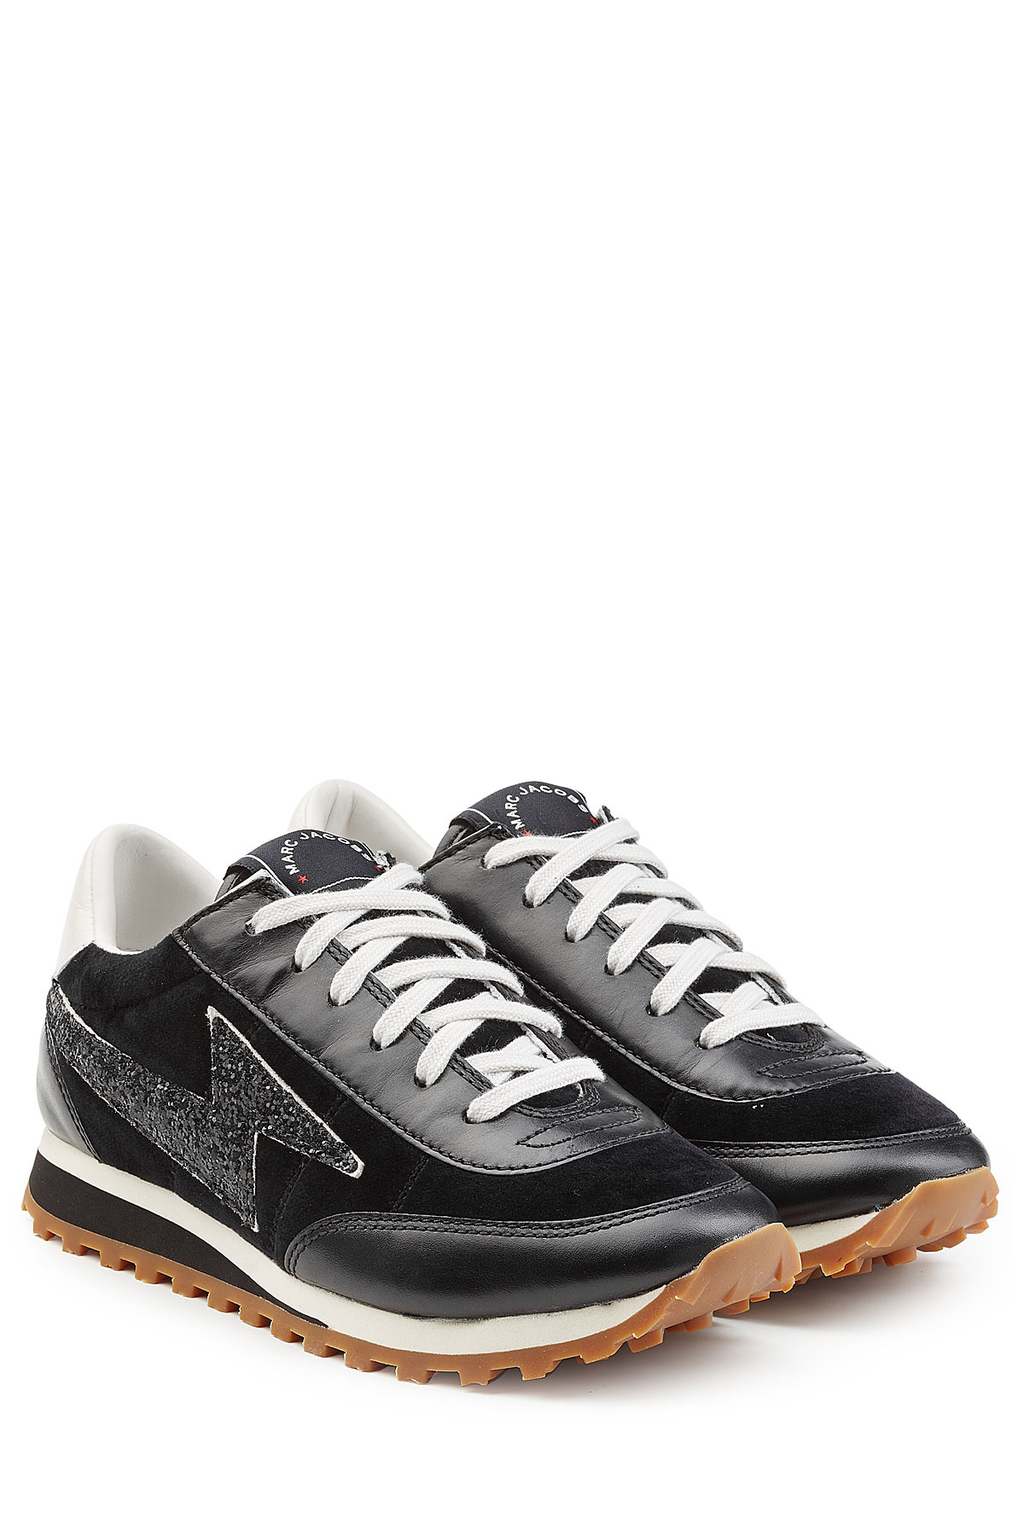 Velvet And Leather Sneakers - predominant colour: black; occasions: casual, activity; material: leather; heel height: flat; toe: round toe; style: trainers; finish: plain; pattern: plain; season: s/s 2013; shoe detail: moulded soul